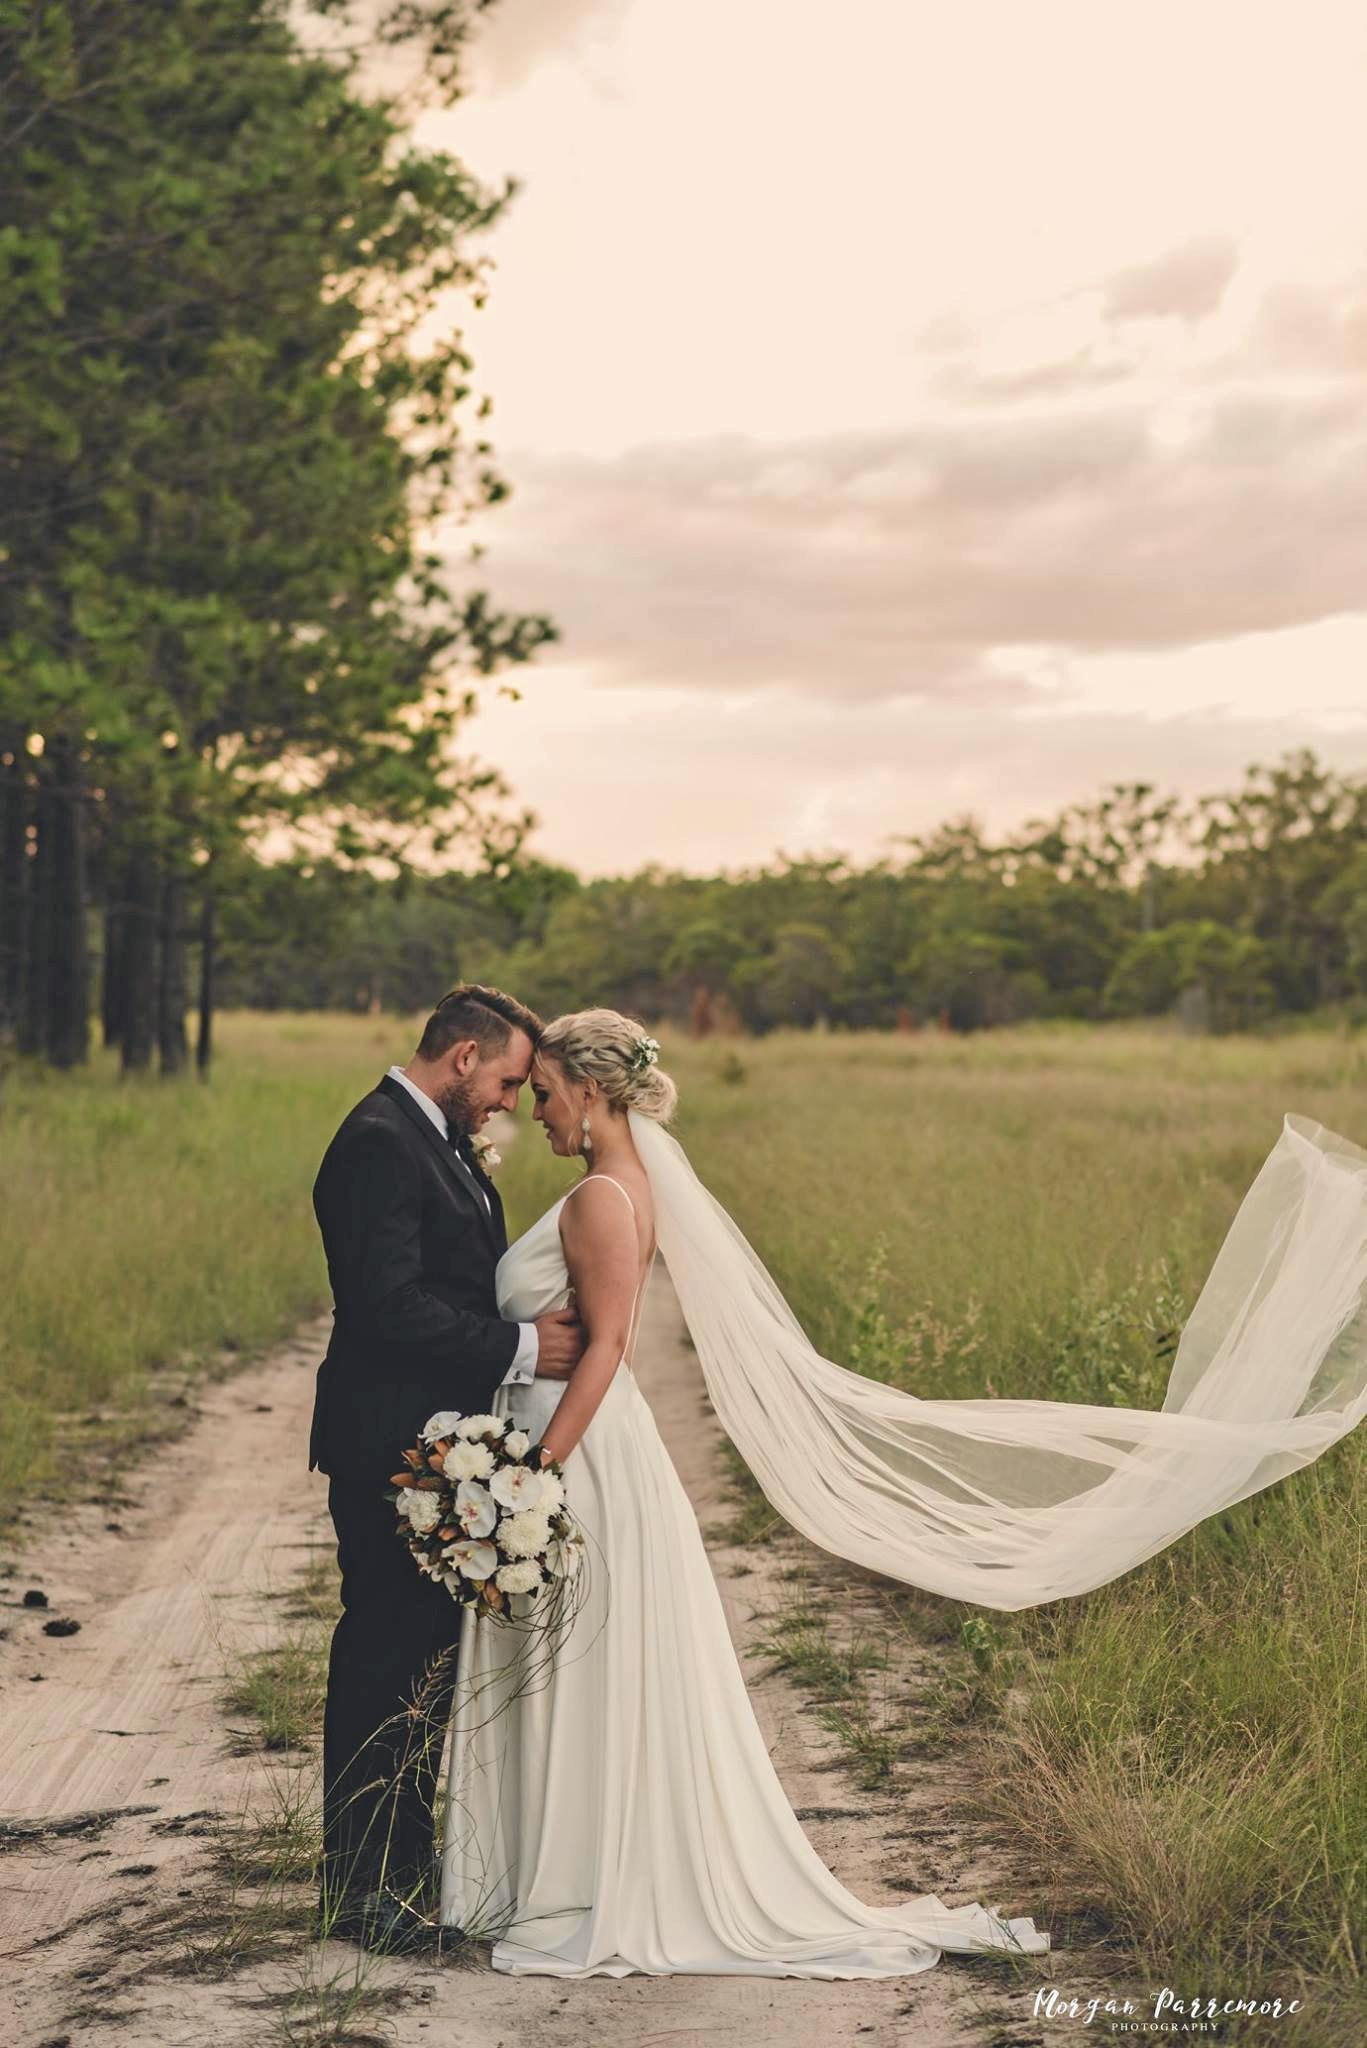 LOVE BIRDS: Brooke and Chris Bone tied the knot at Eleven Acres over the weekend.